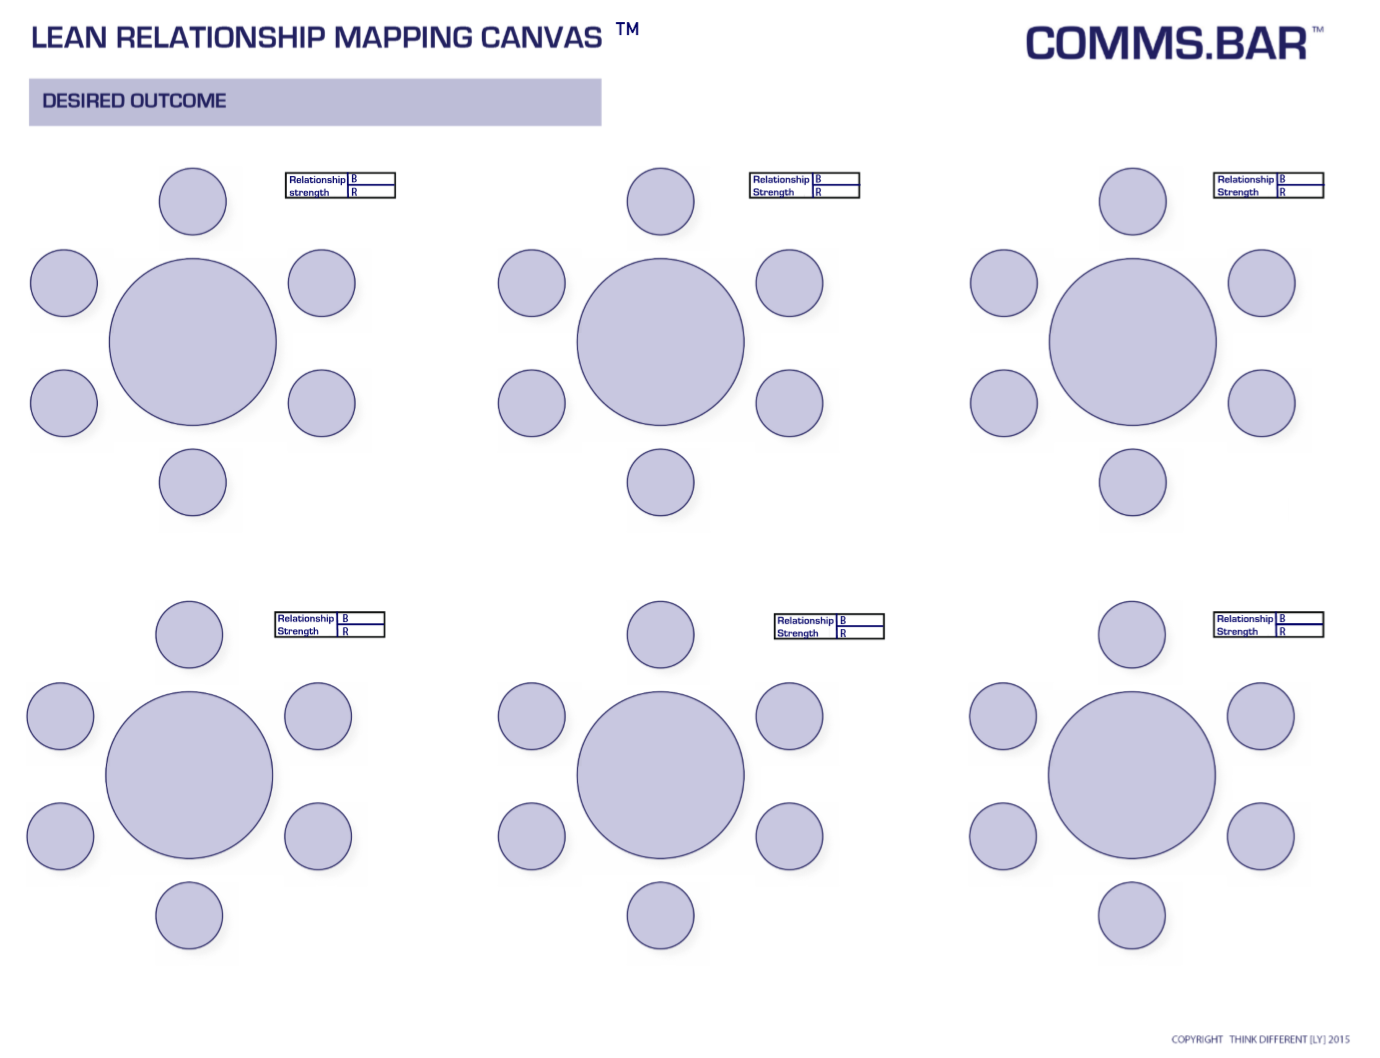 Key Relationship Mapping Canvas